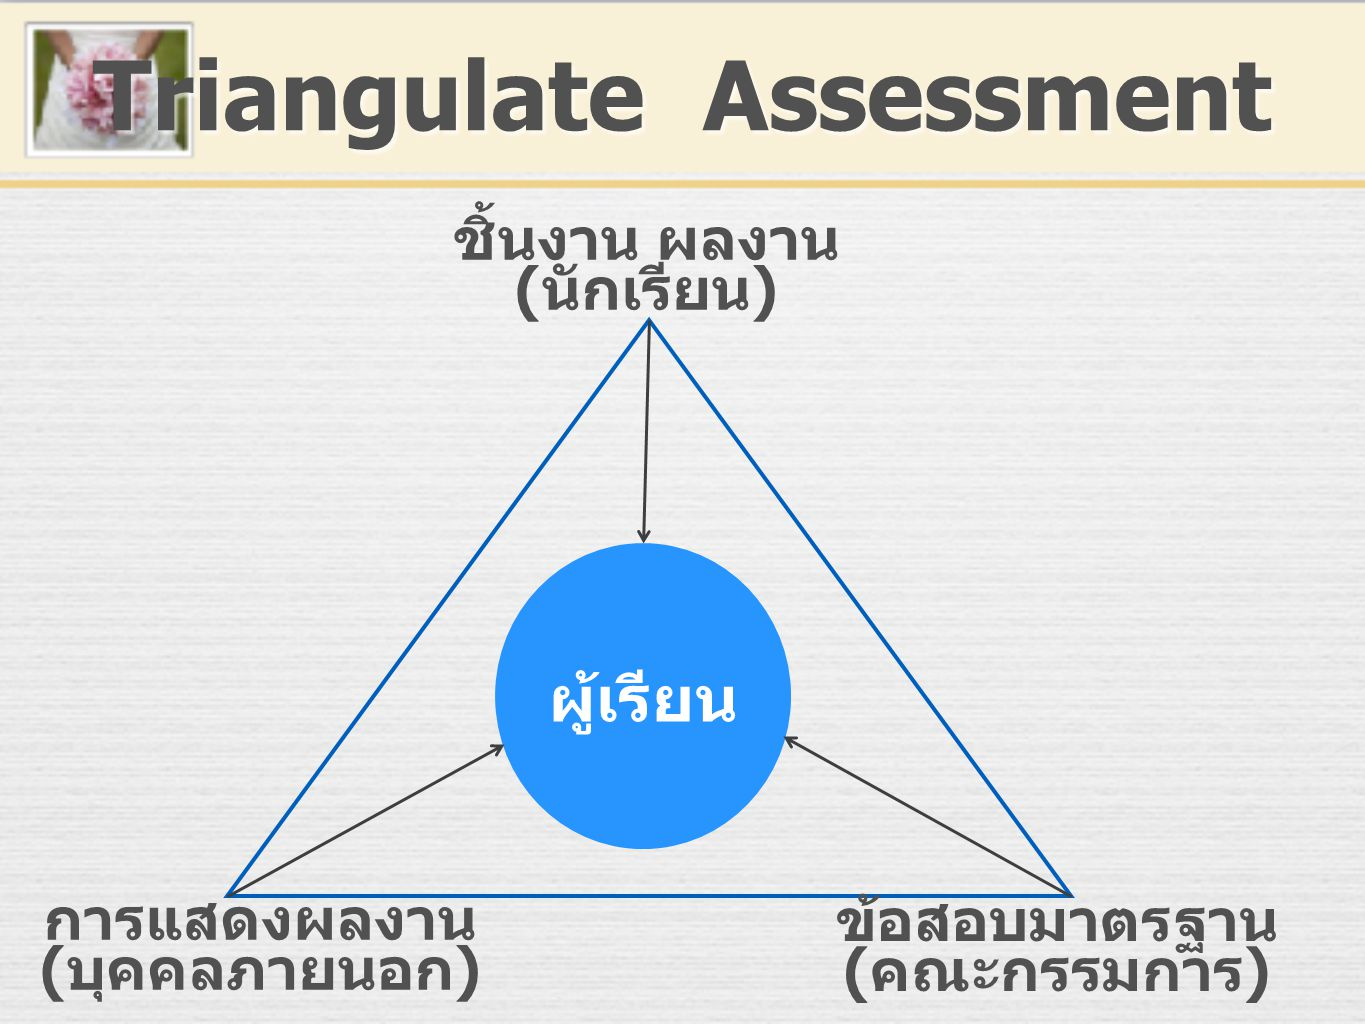 Triangulate Assessment